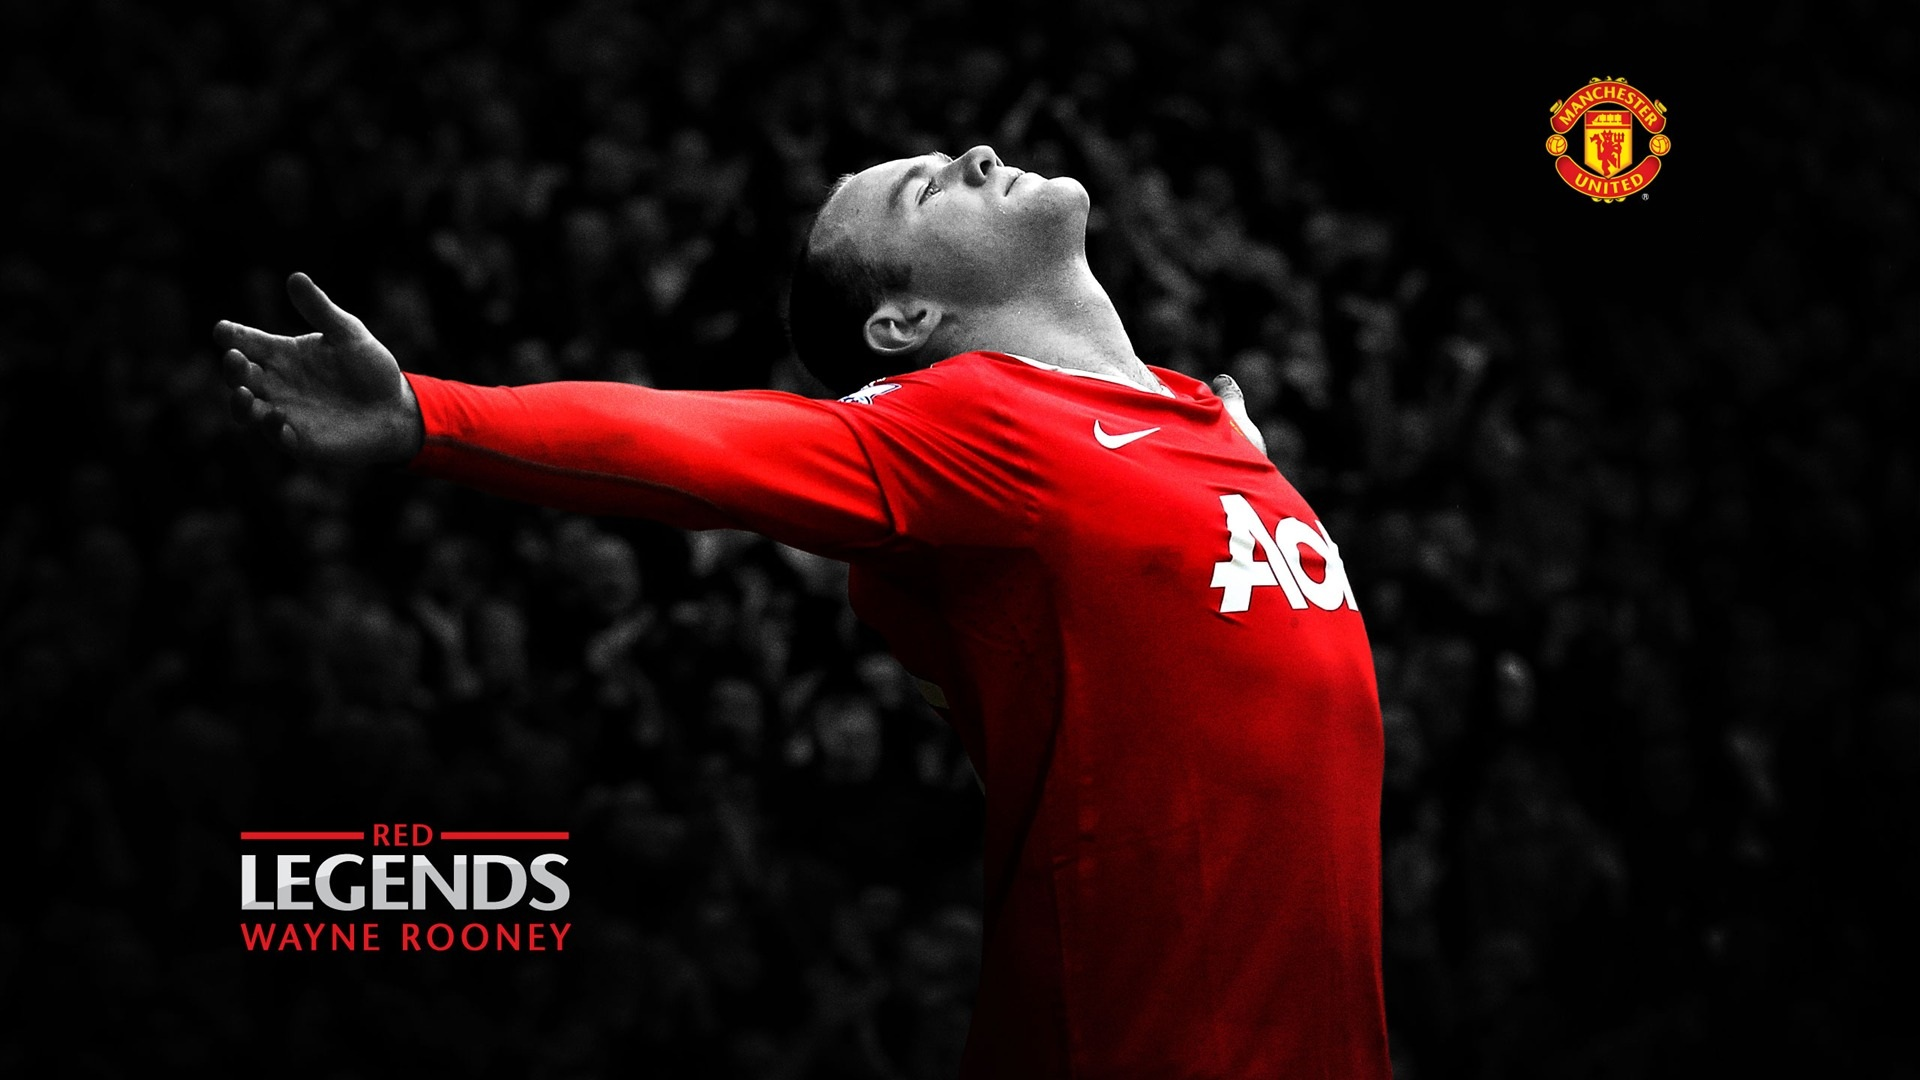 Manchester United Wallpaper Phone Epic Wallpaperz 1920x1080